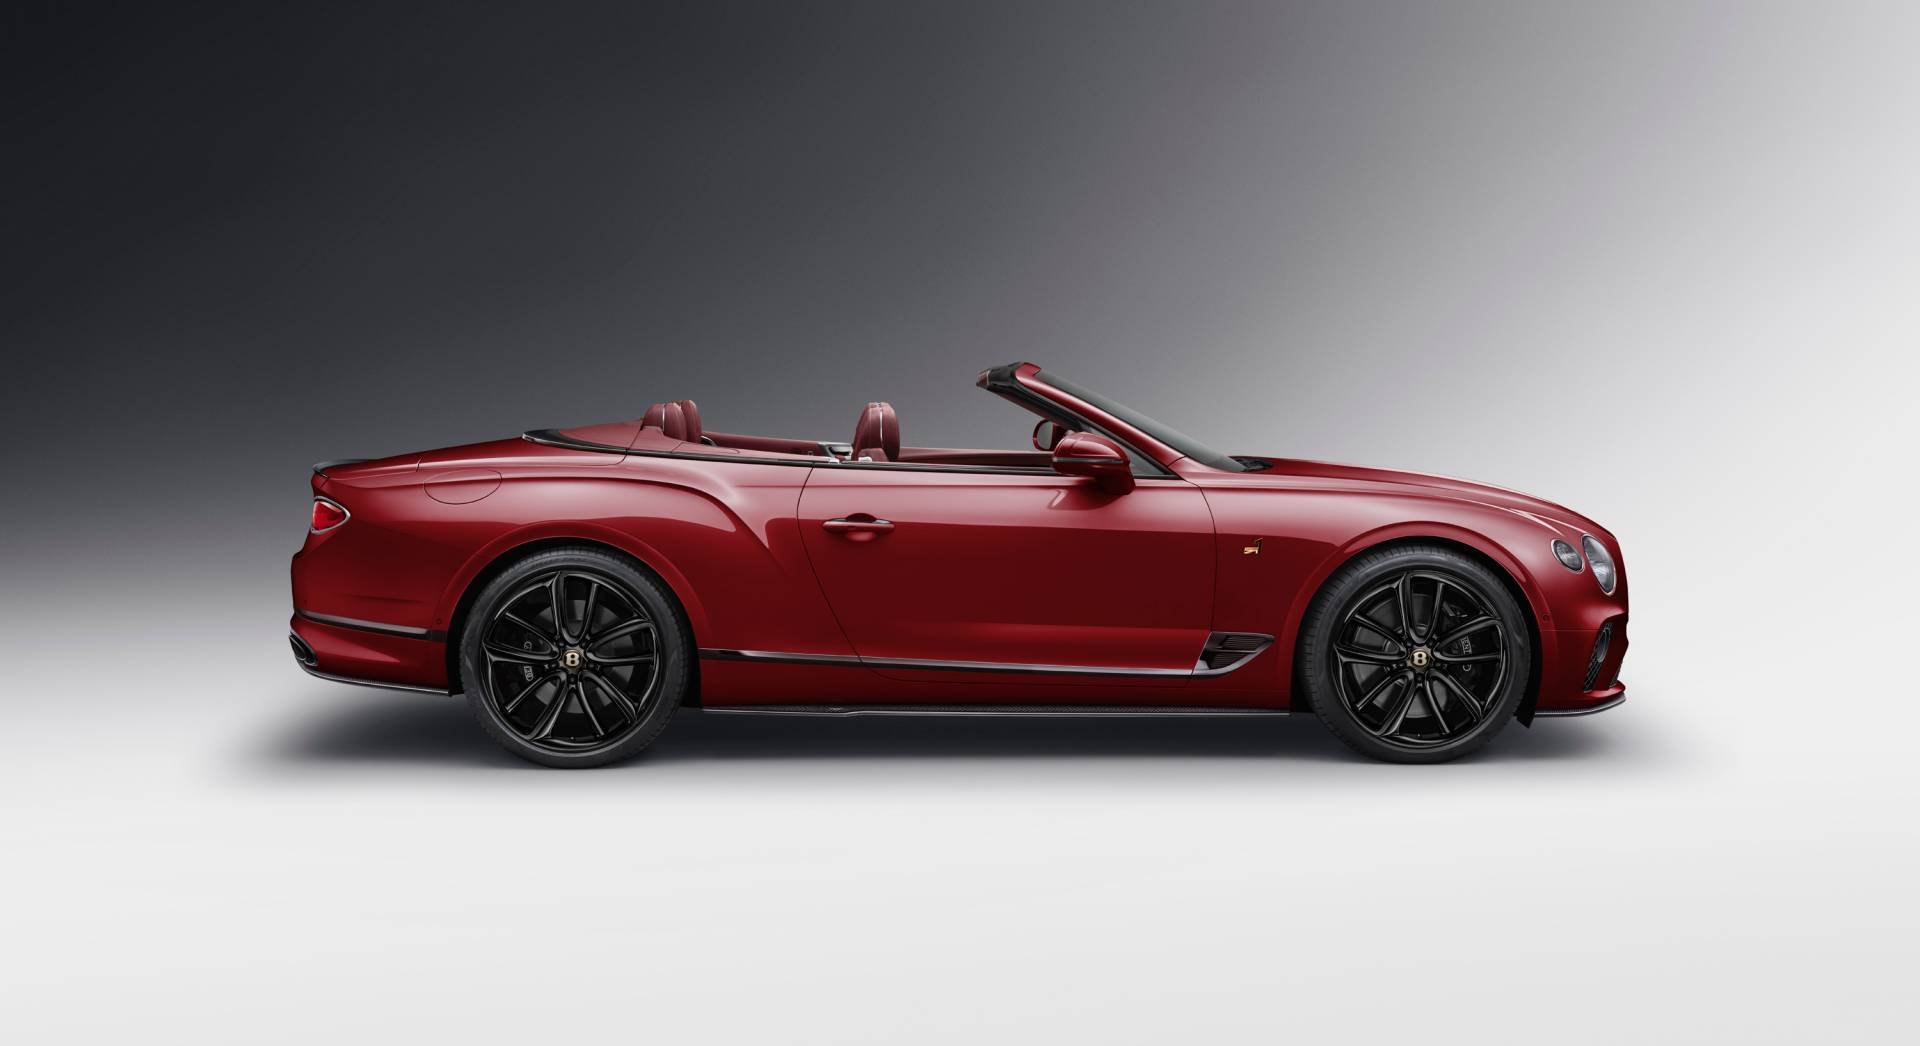 Bentley_Continental_GT_Convertible_Number_1_Edition_by_Mulliner_0002